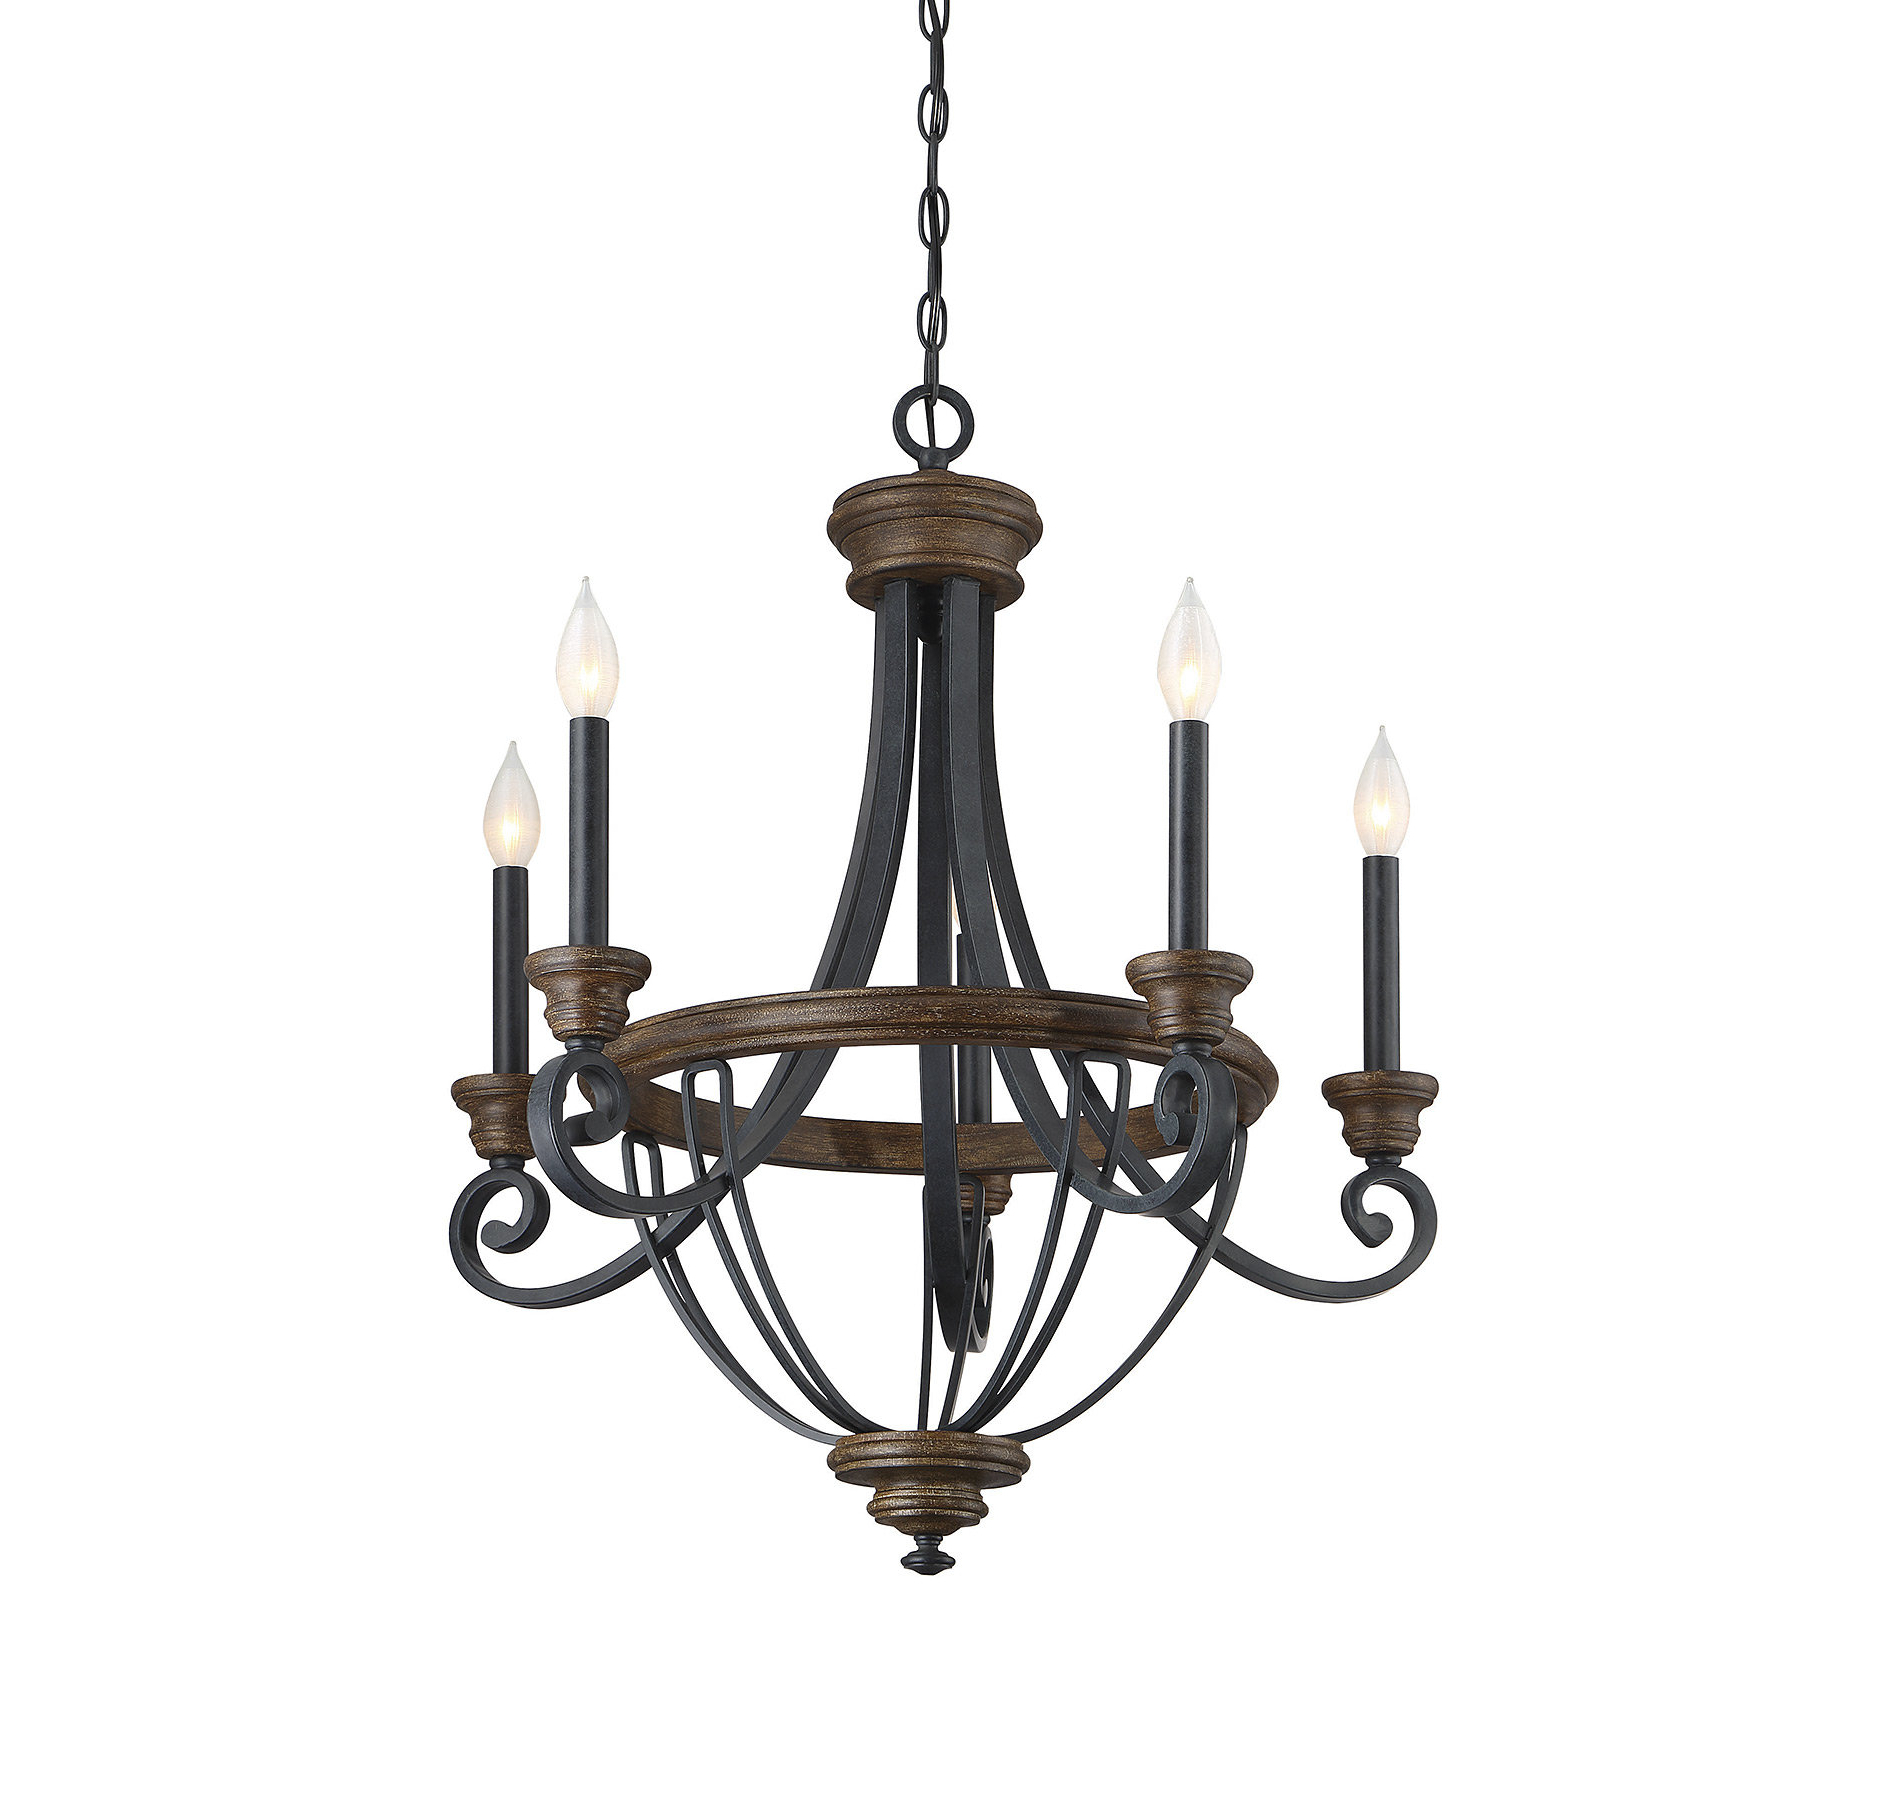 Nanteuil 5 Light Empire Chandelier Intended For 2020 Camilla 9 Light Candle Style Chandeliers (View 16 of 20)